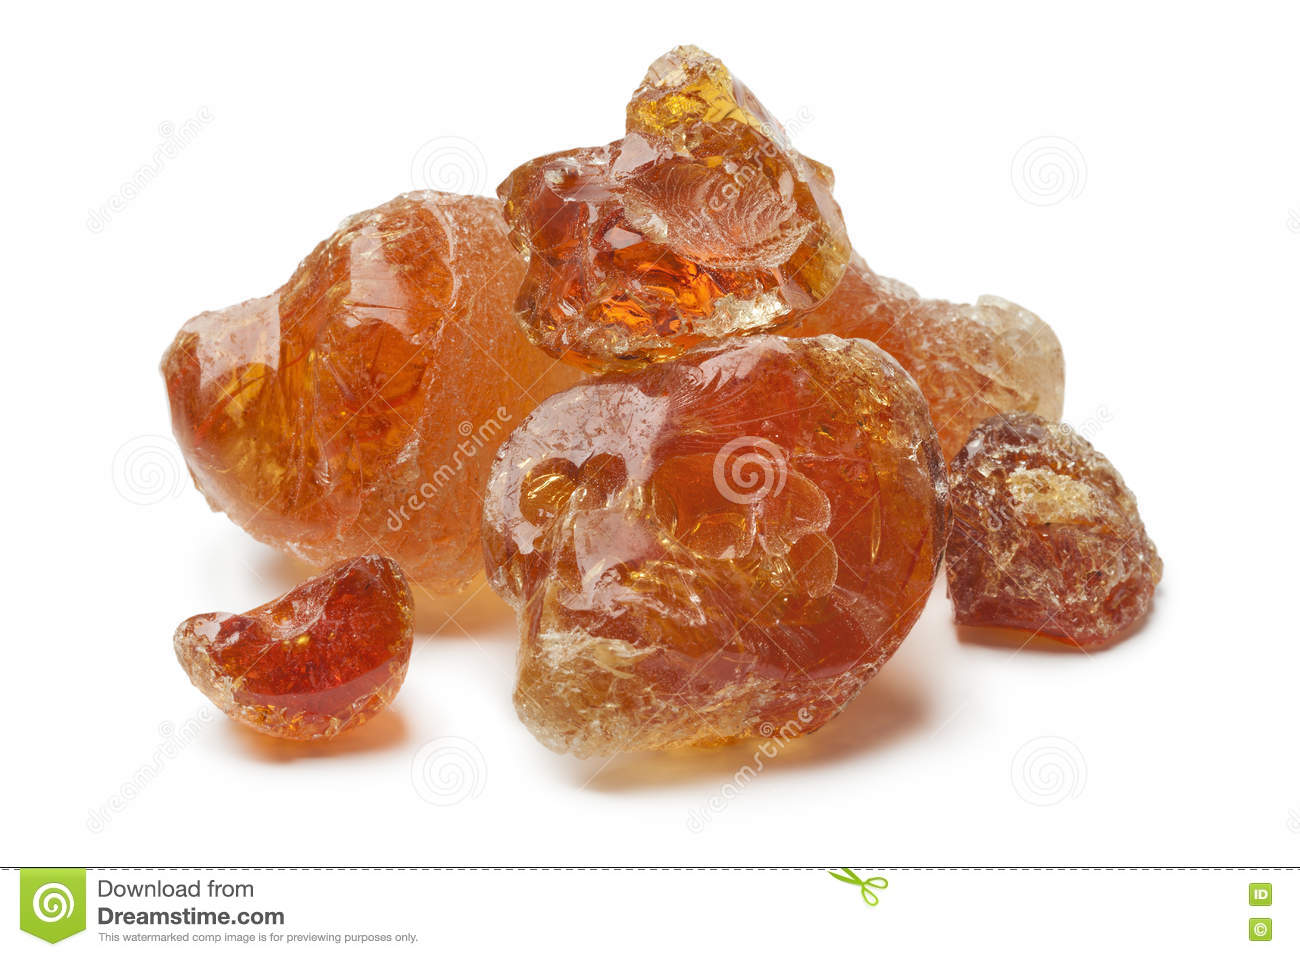 Pieces of Gum arabic